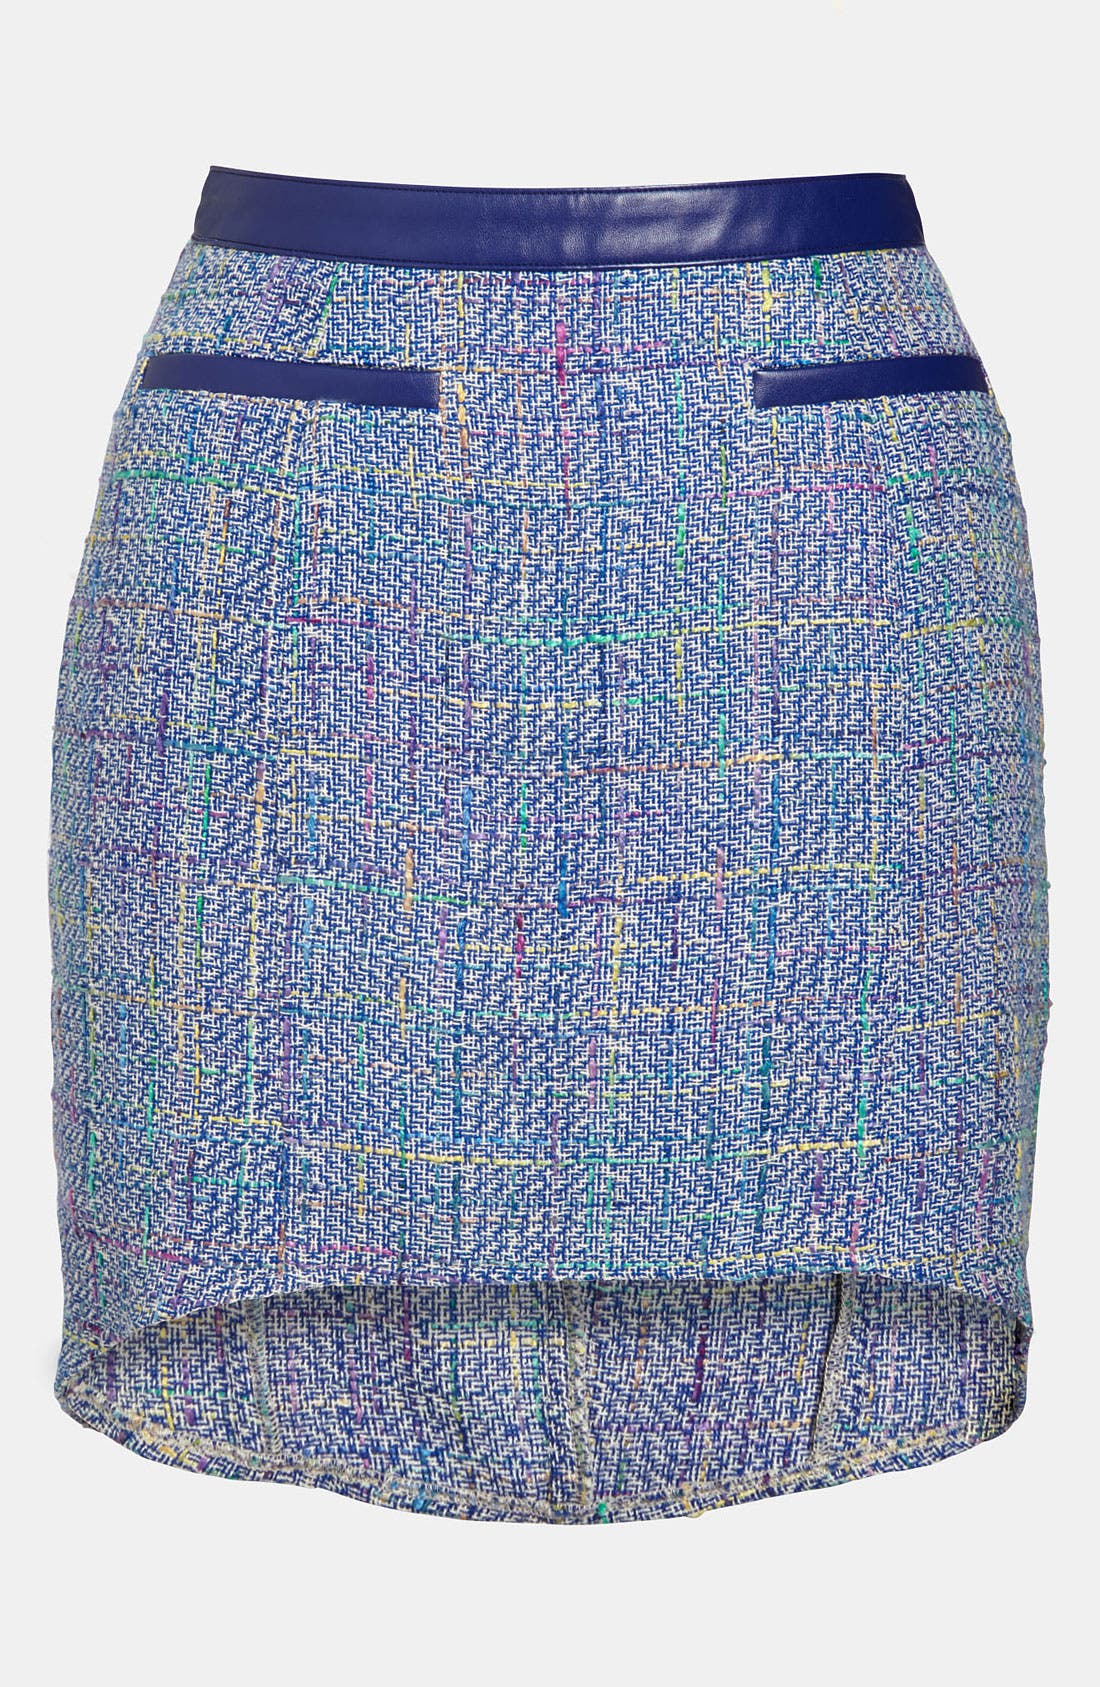 Main Image - ASTR High/Low Tweed Skirt